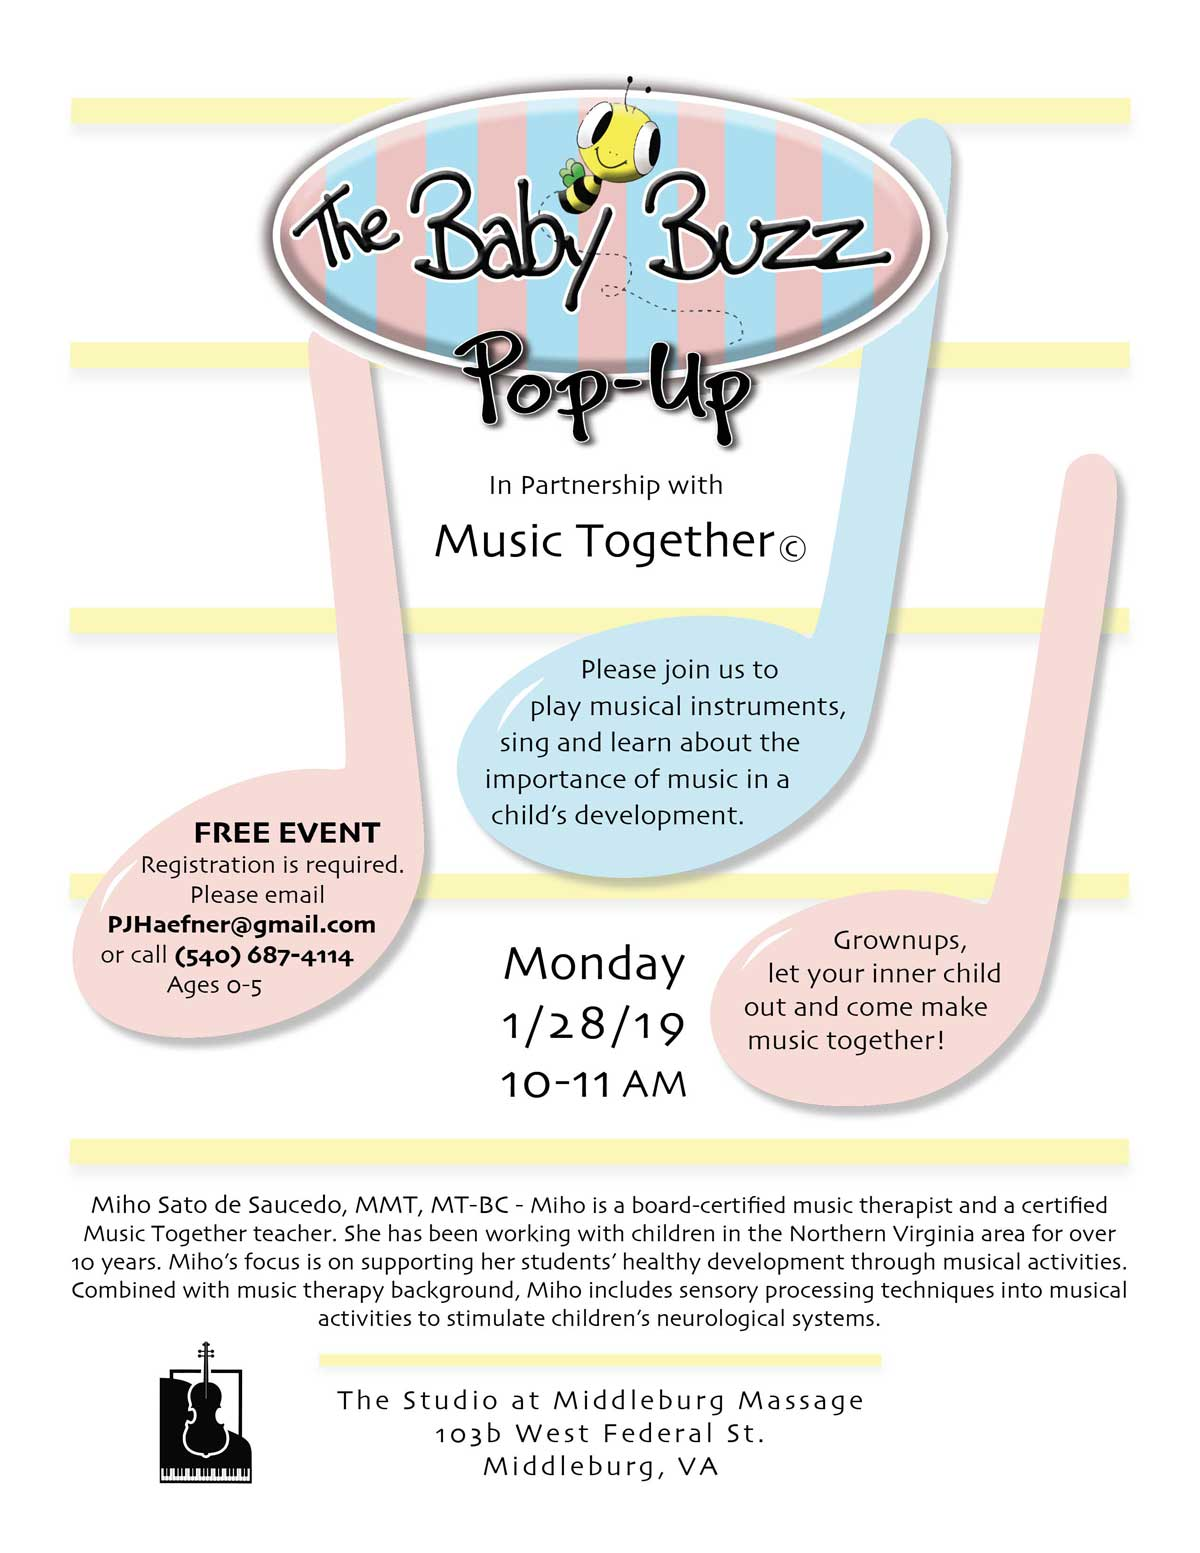 2019 Music Together Pop-up